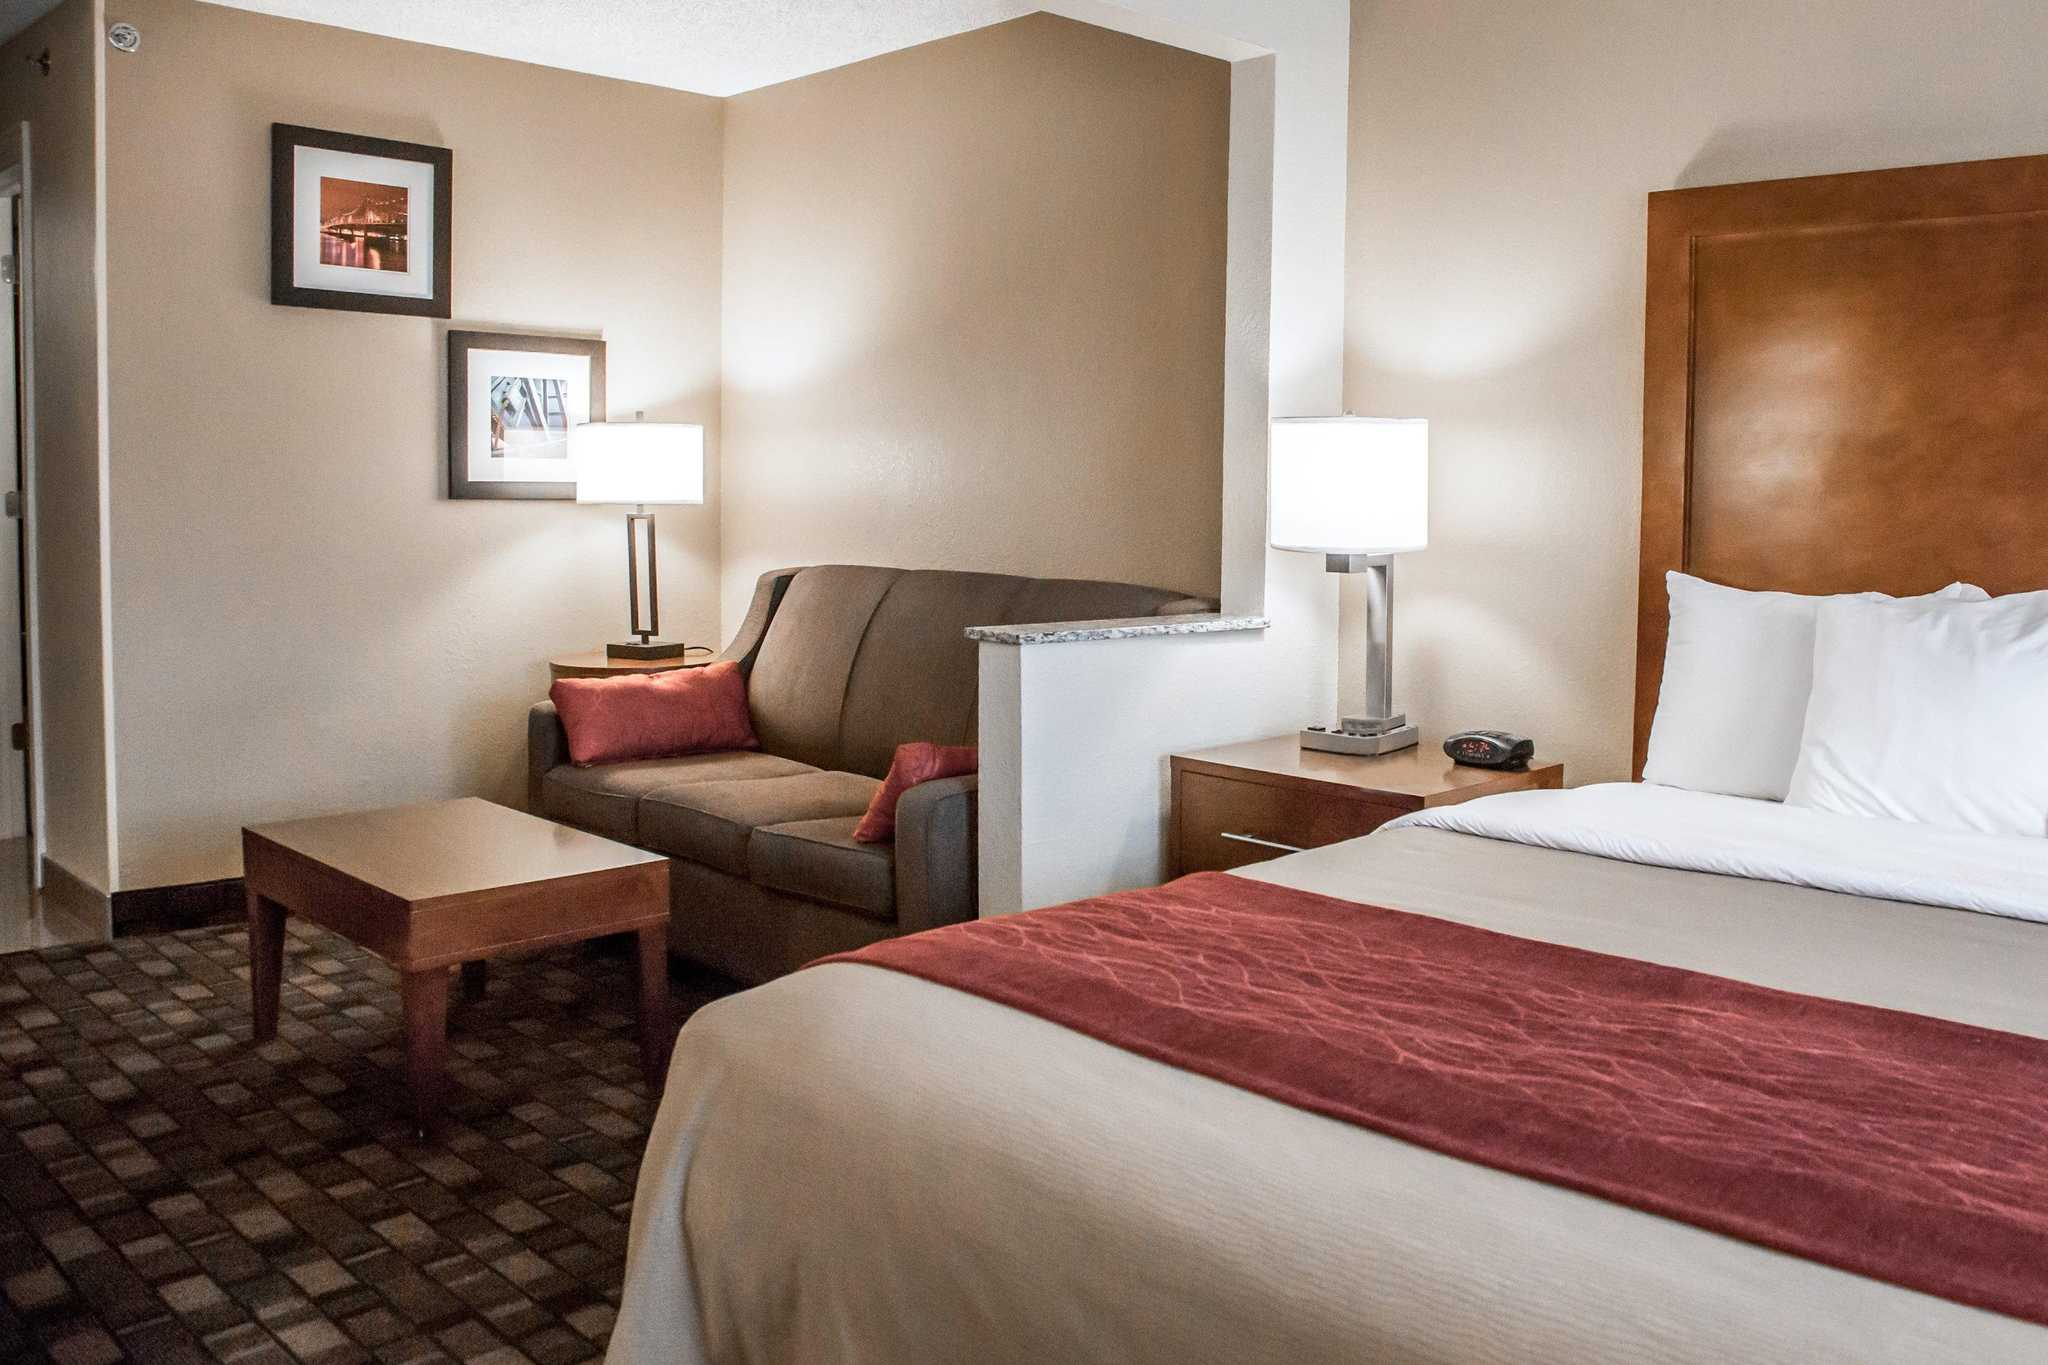 Quality Inn amp Suites South  Joliet IL Hotel  Book Now!